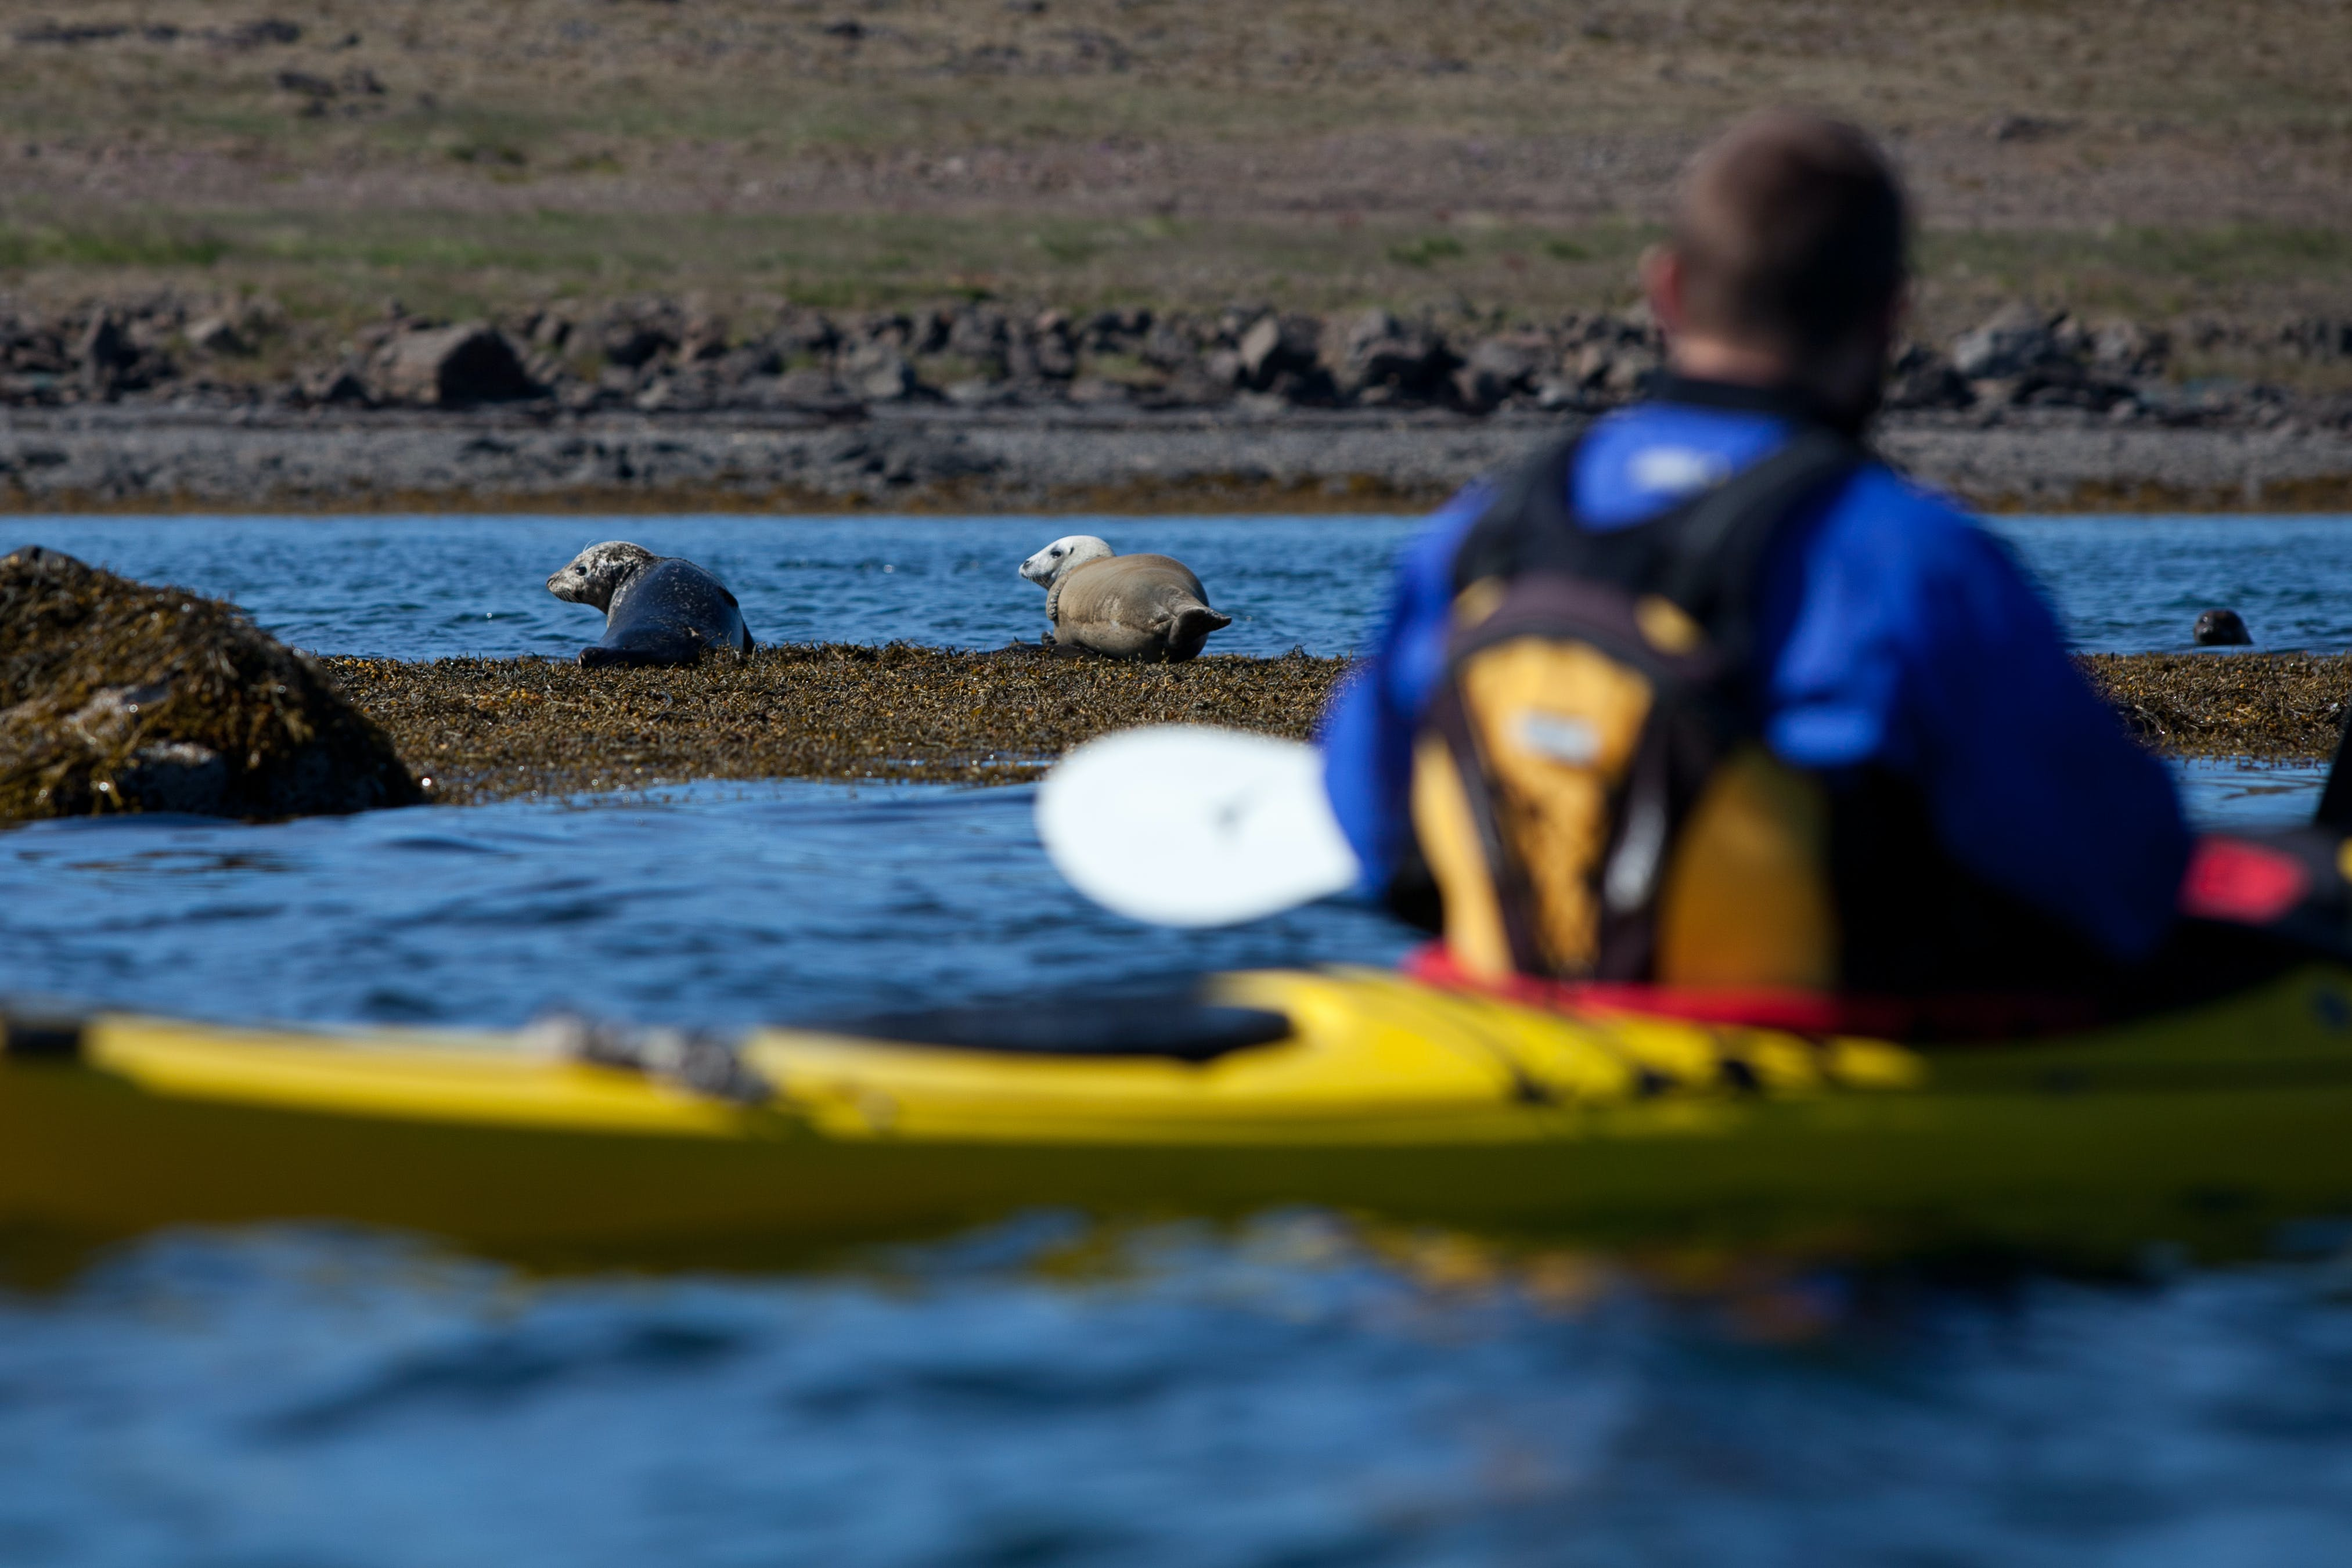 Kayaking with Seals | A trip to Hvalfjordur fjord